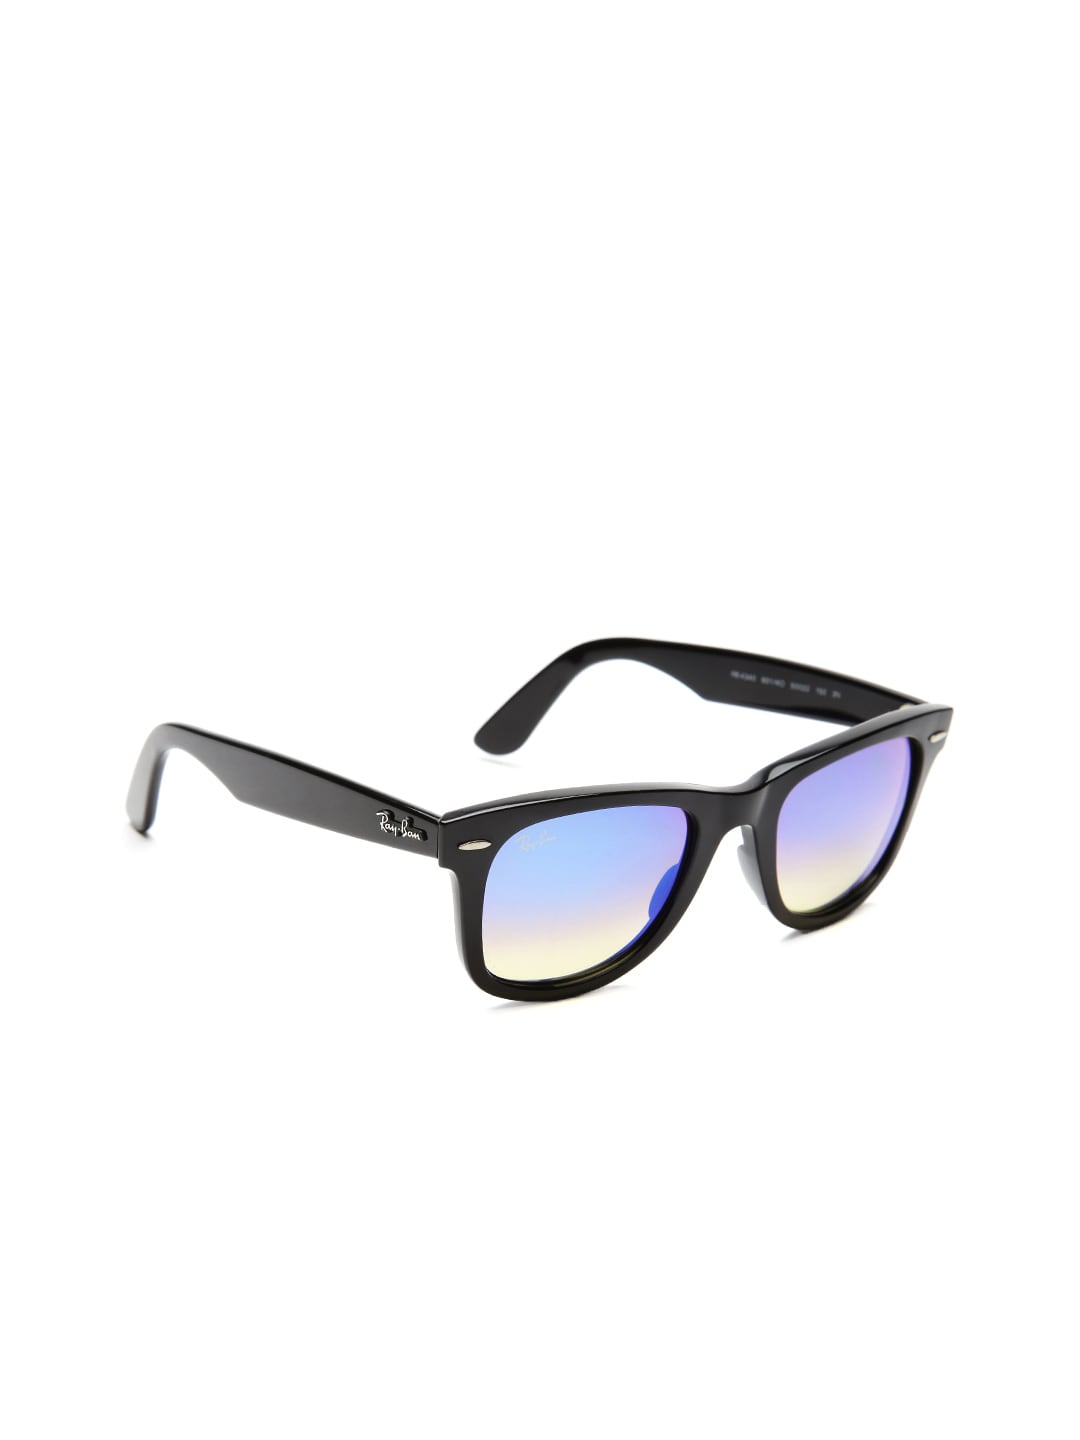 e12466a74c Ray-Ban® - Buy Ray-Ban Sunglasses   Frames Online in India